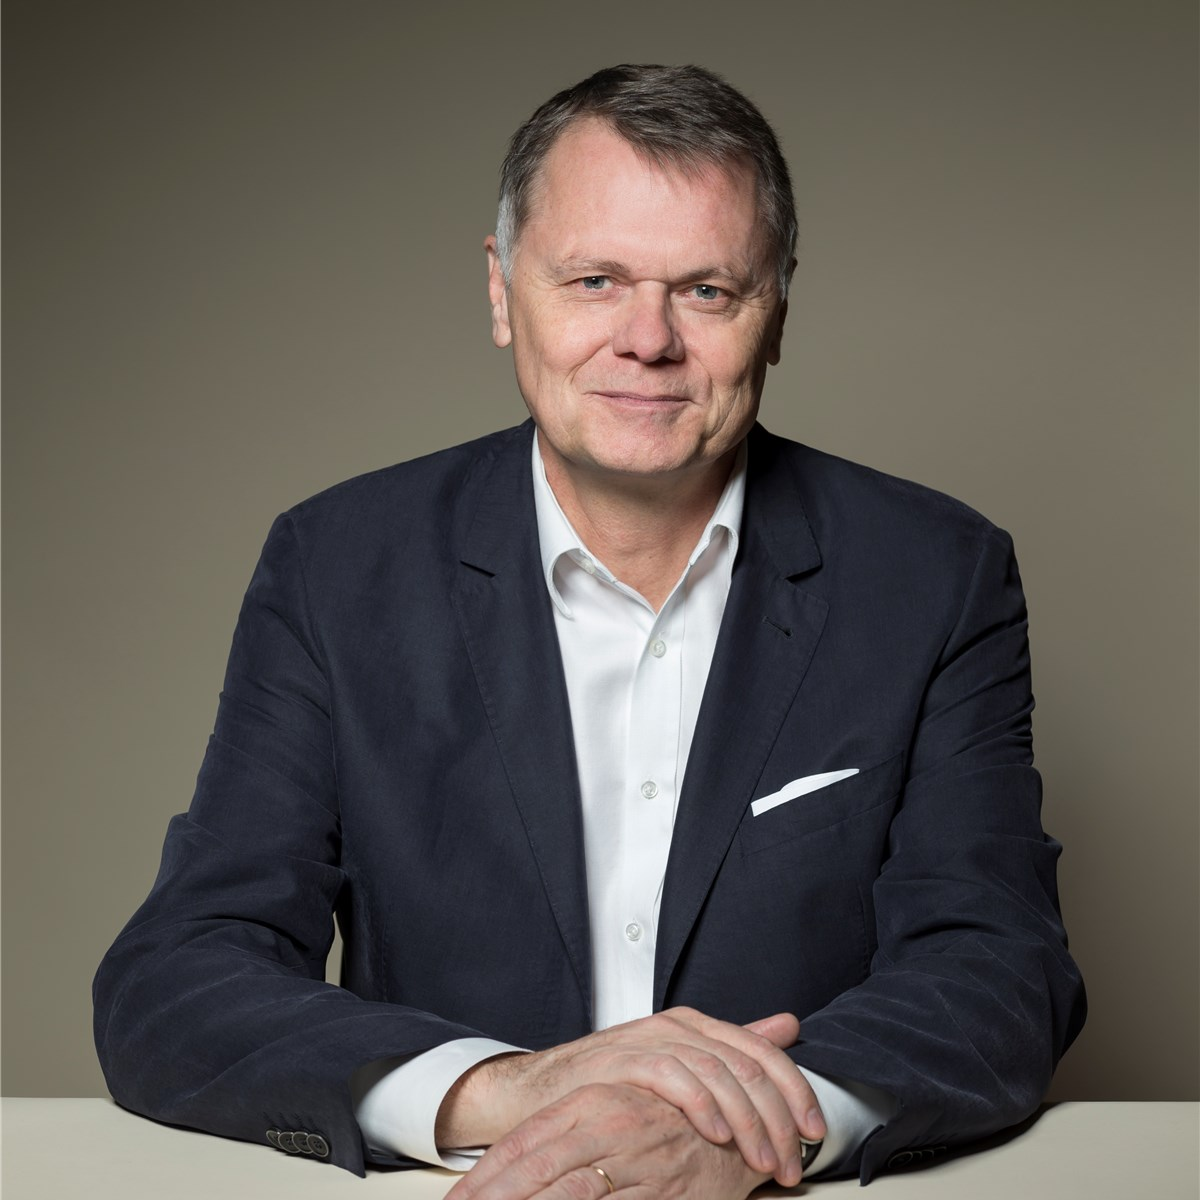 Andreas Krebs, Chairman